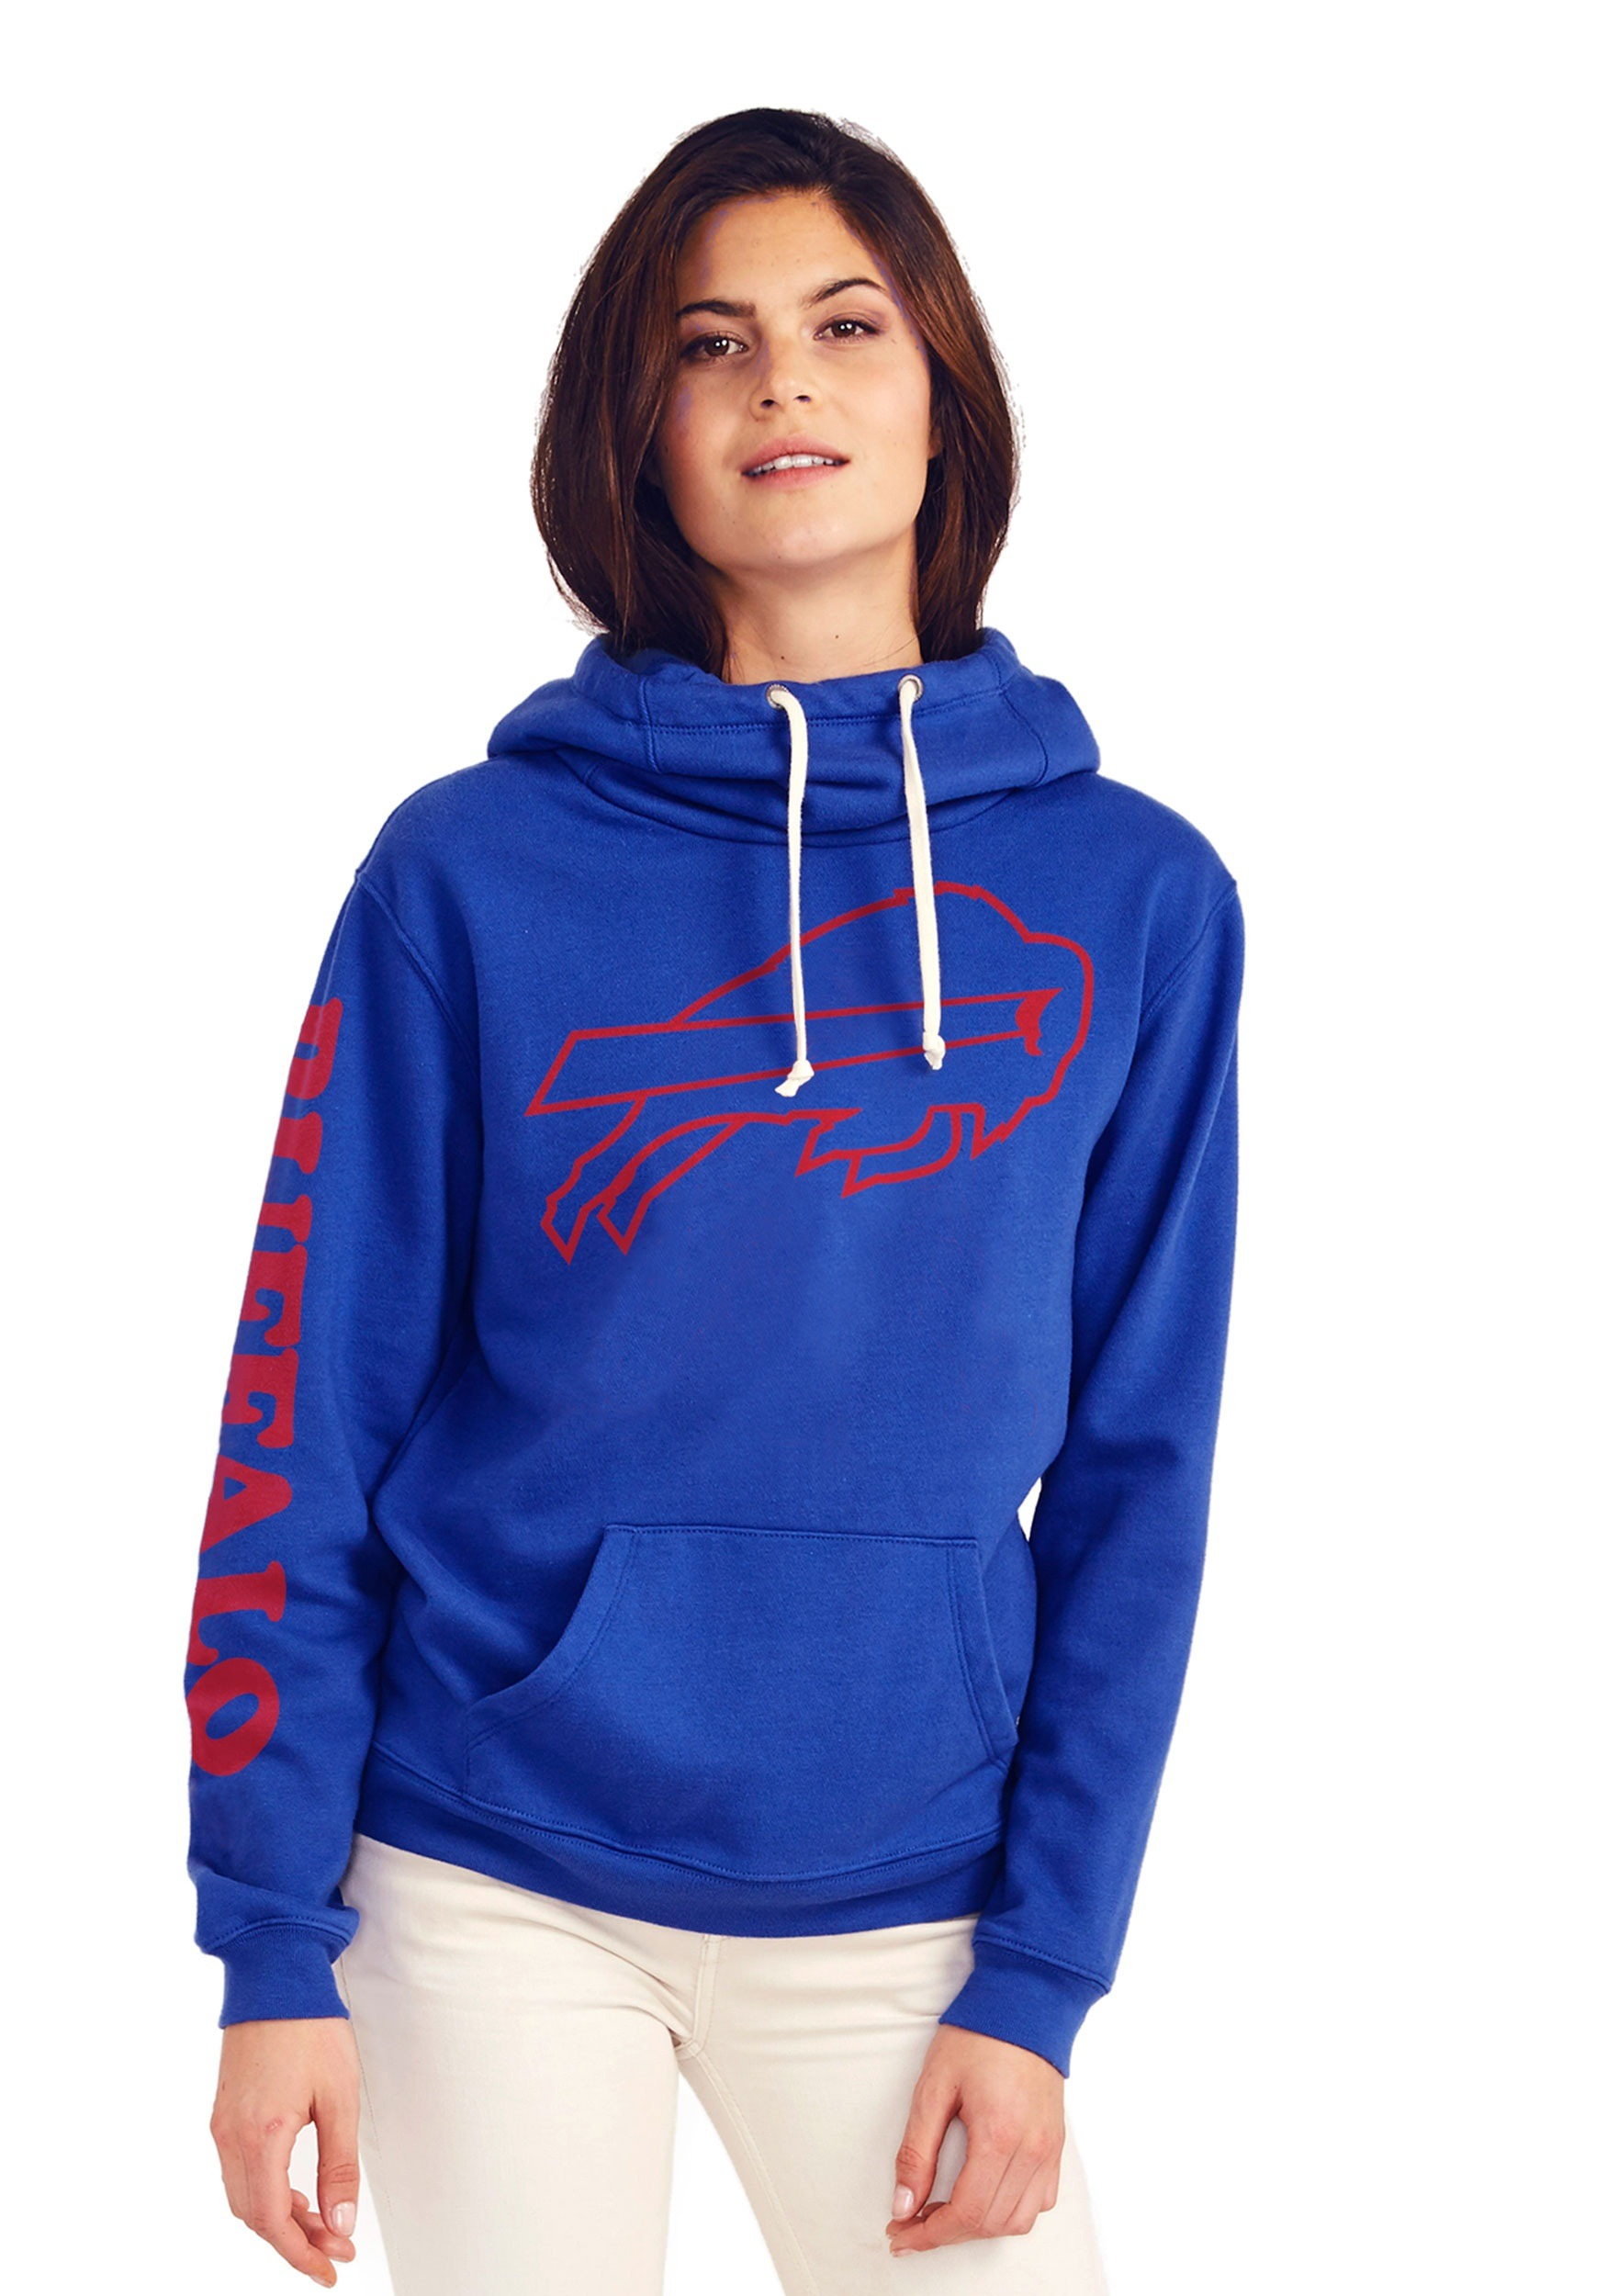 dfe01531 Buffalo Bills Women's Cowl Neck Hooded Sweatshirt